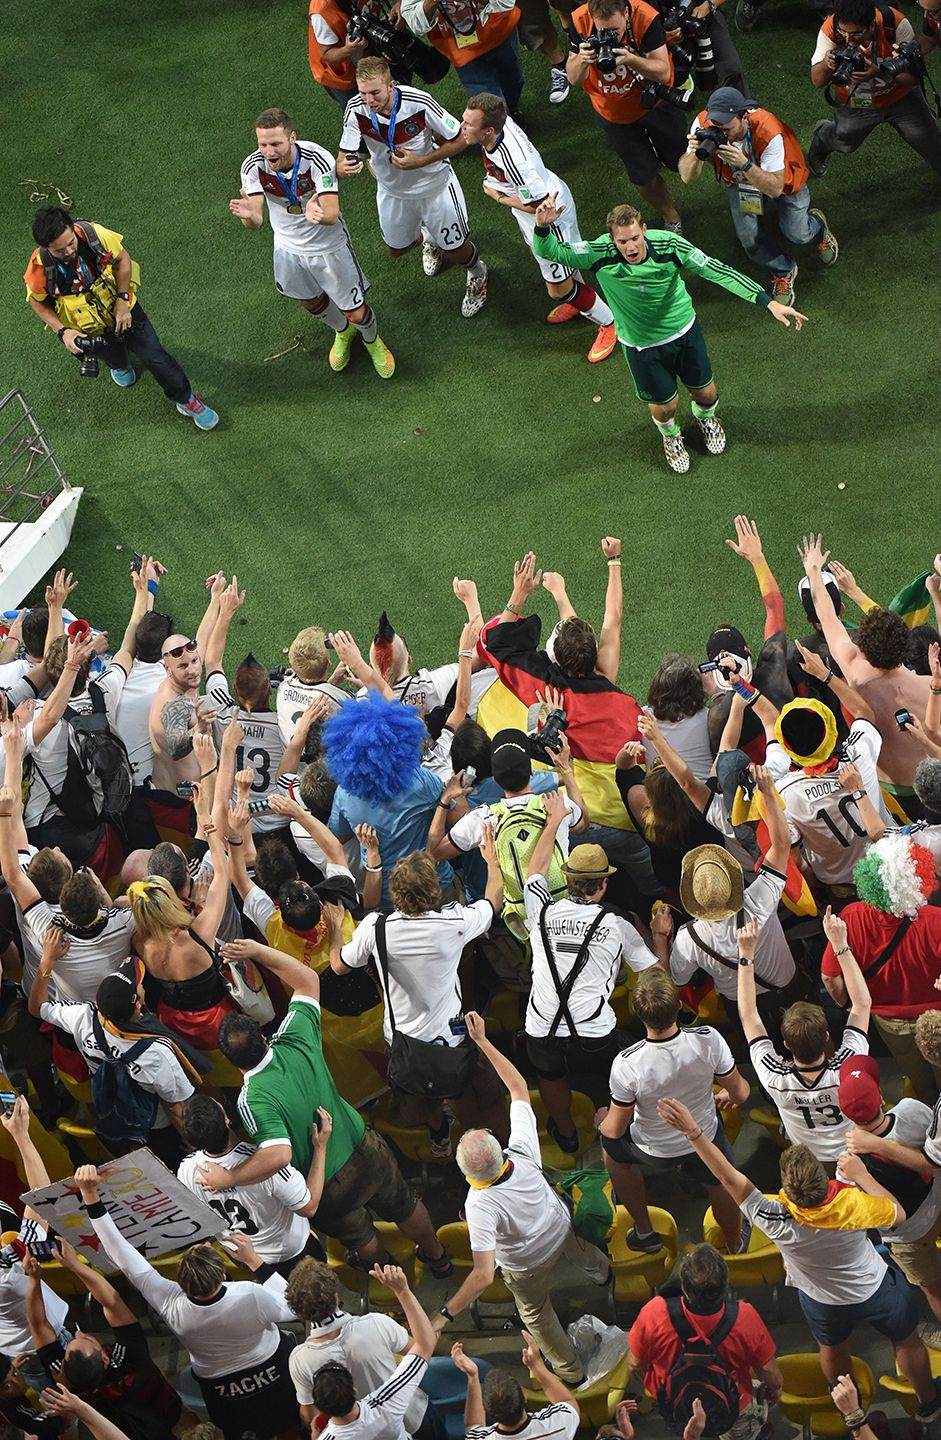 FE_WorldCup_01_452113476